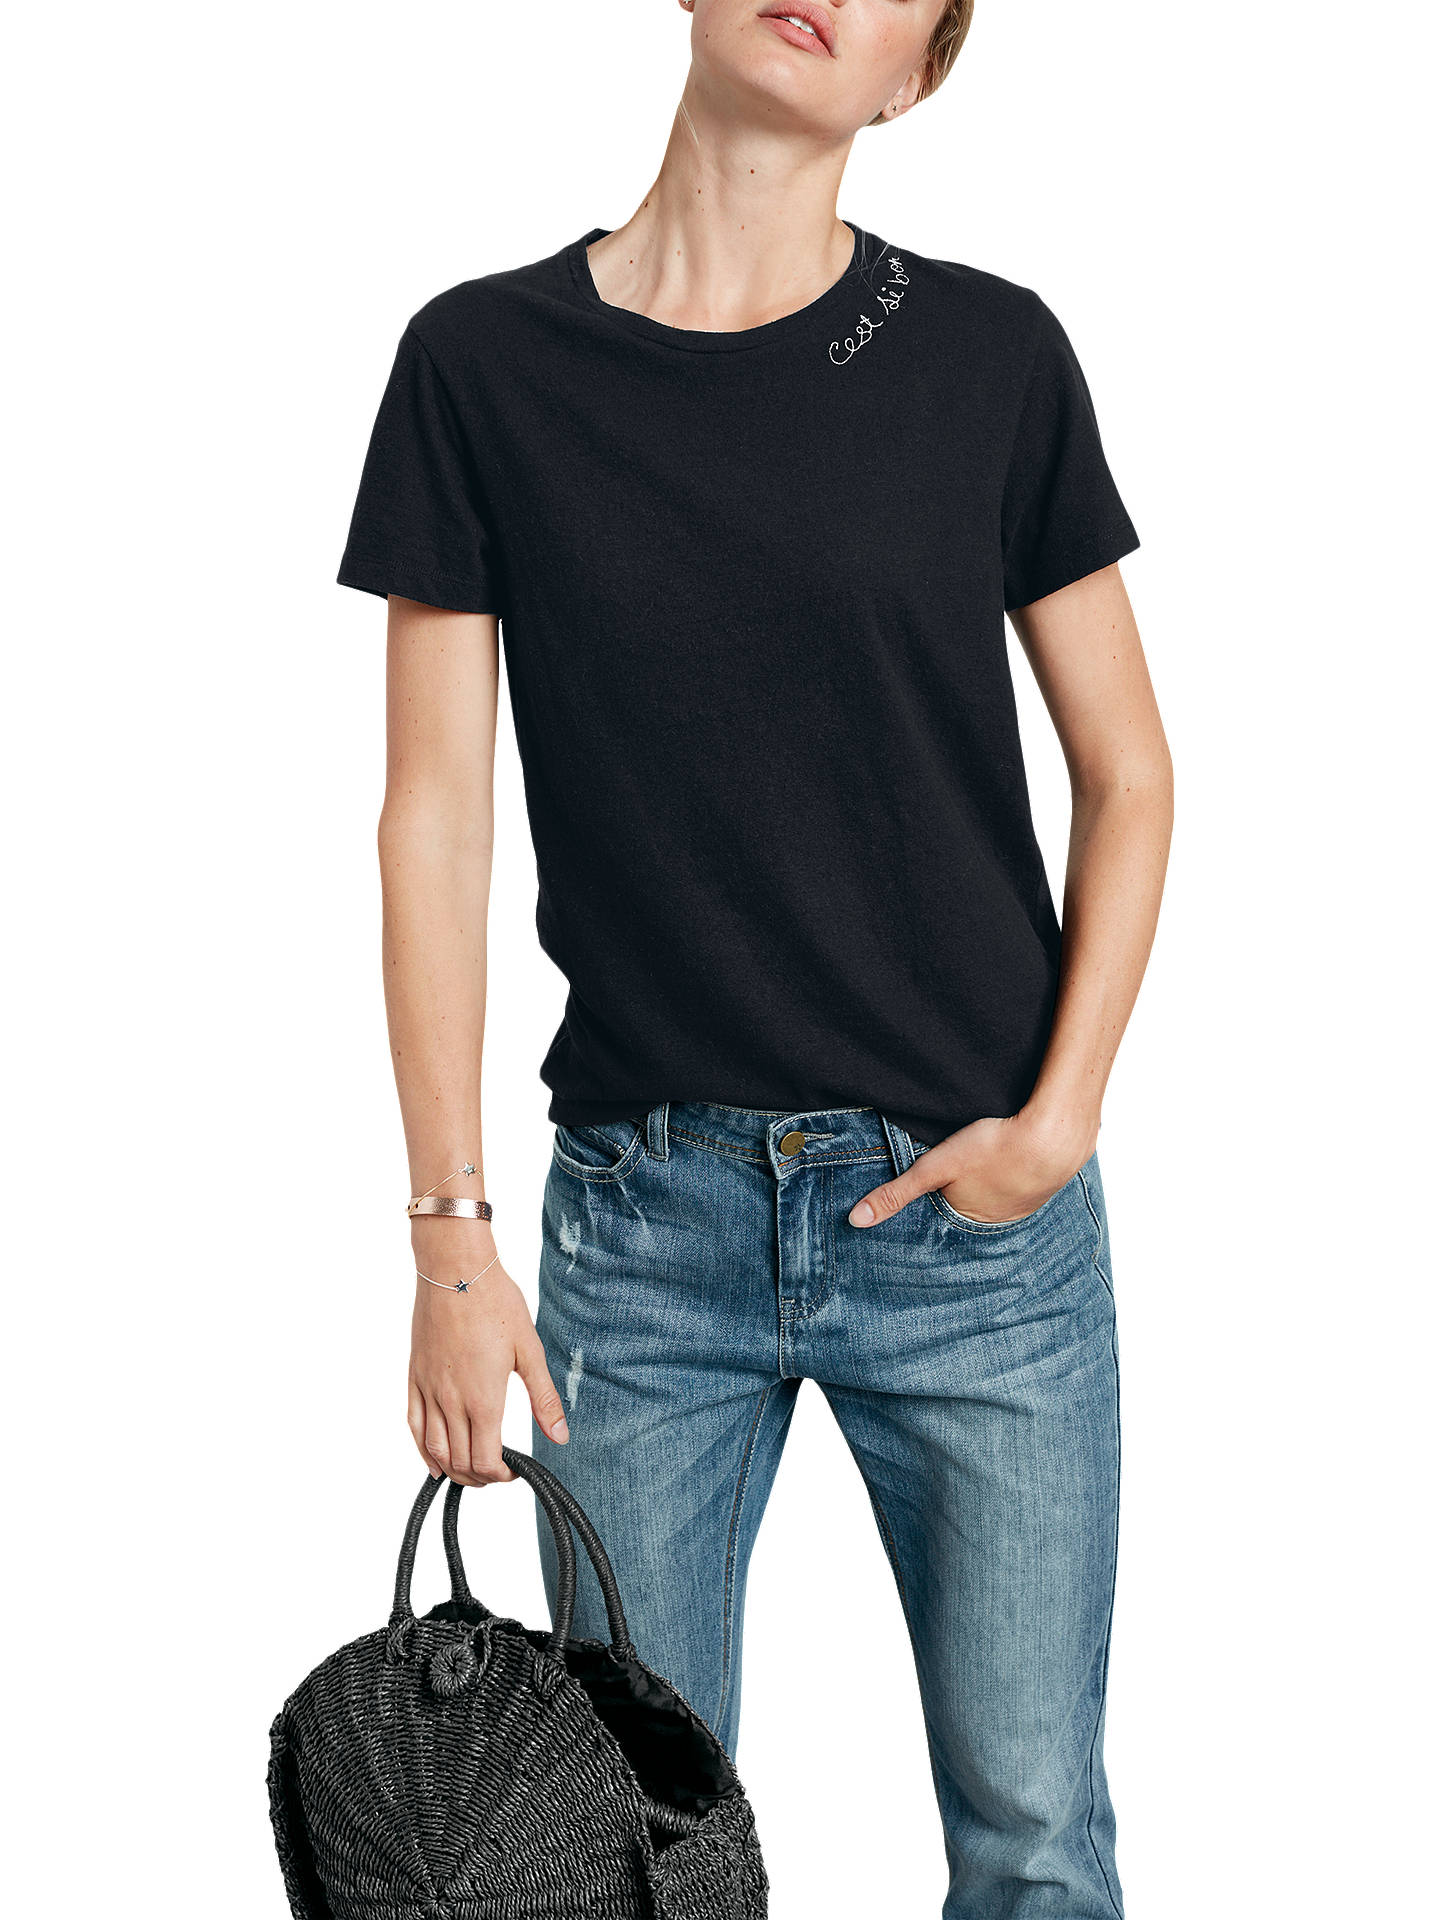 Buyhush 'Cest Si Bon' T-Shirt, Black, L Online at johnlewis.com